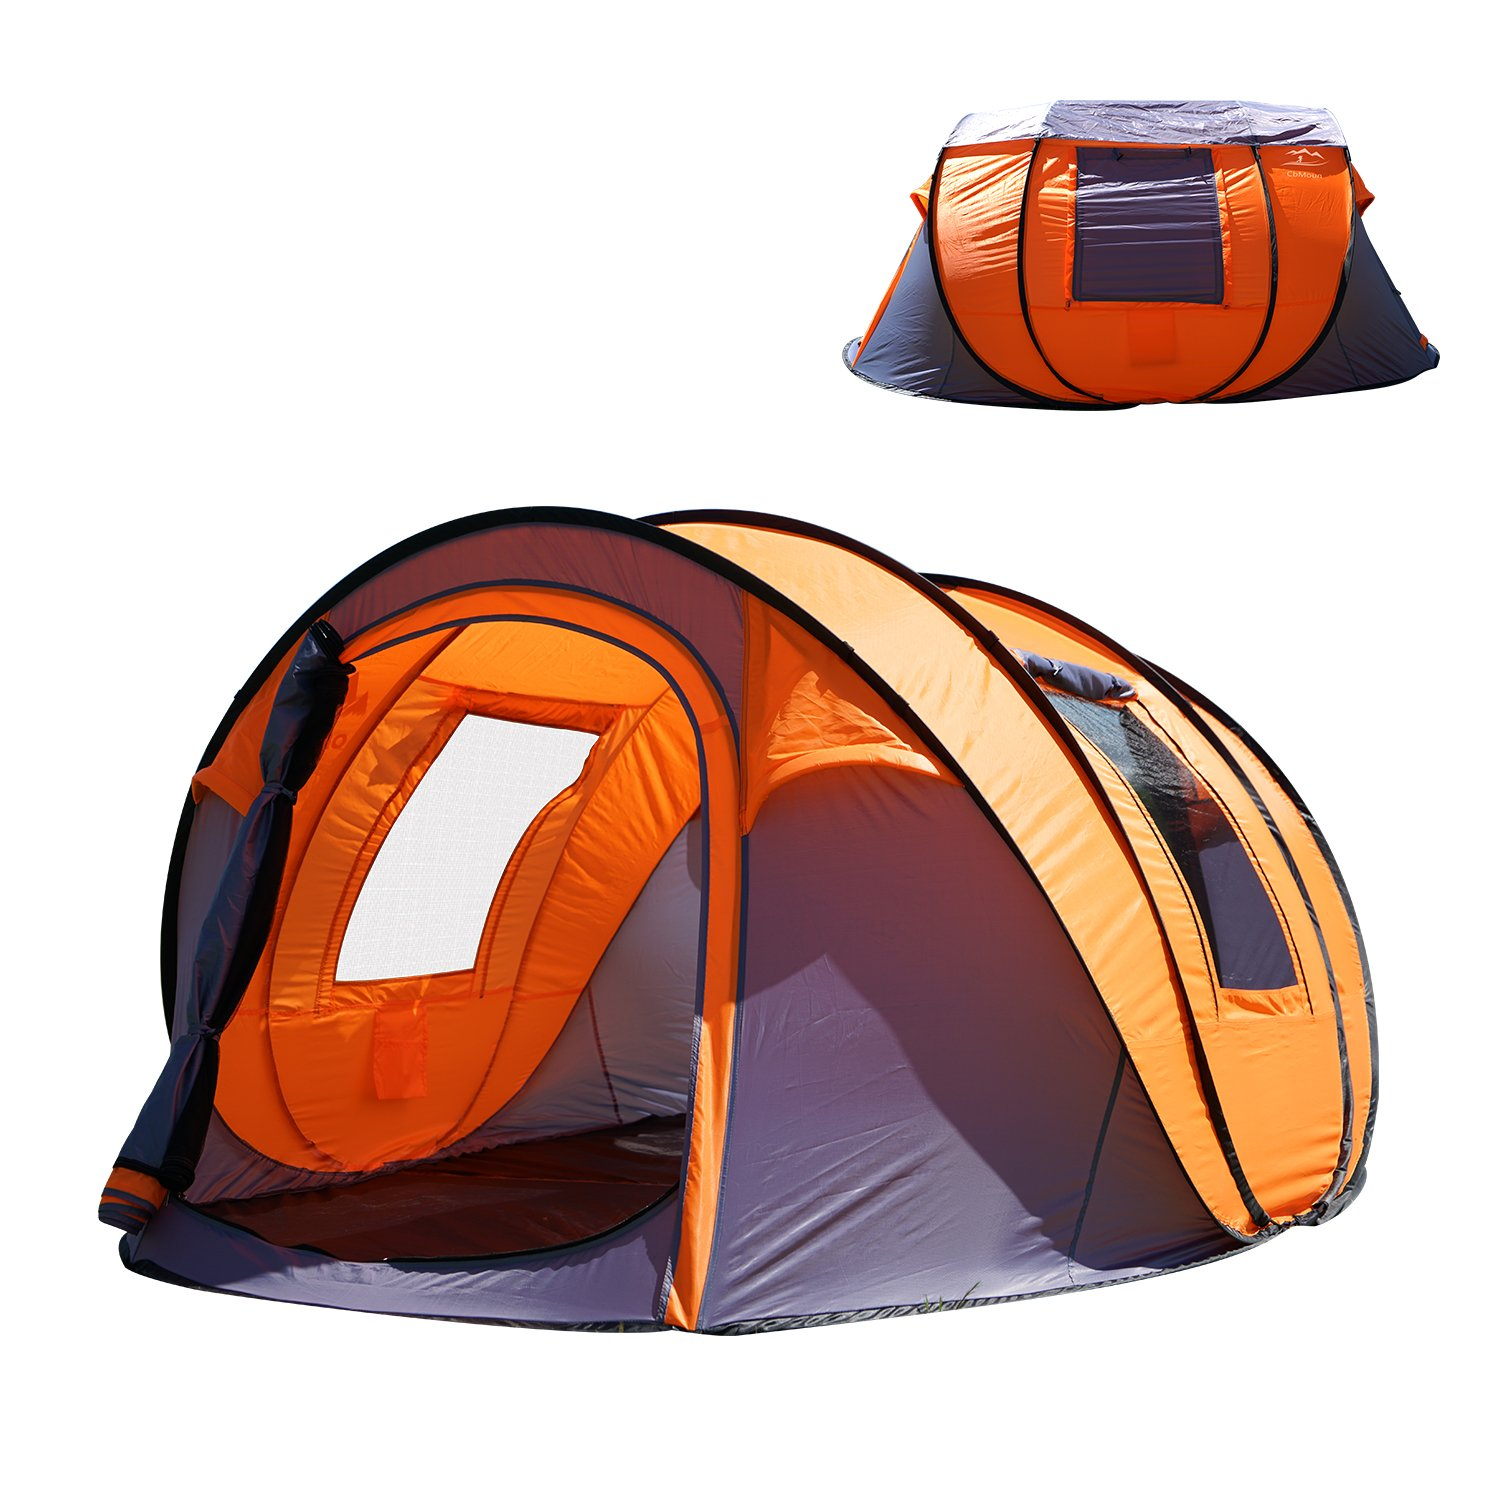 """Oileus XL Pop Up Tents Camping 4-6 Person Tent Sky-Window(45""""x 25"""") Instant Camping Tent 14 Reinforced Steel Stakes & Carrying 114""""L 78""""W 51""""H"""